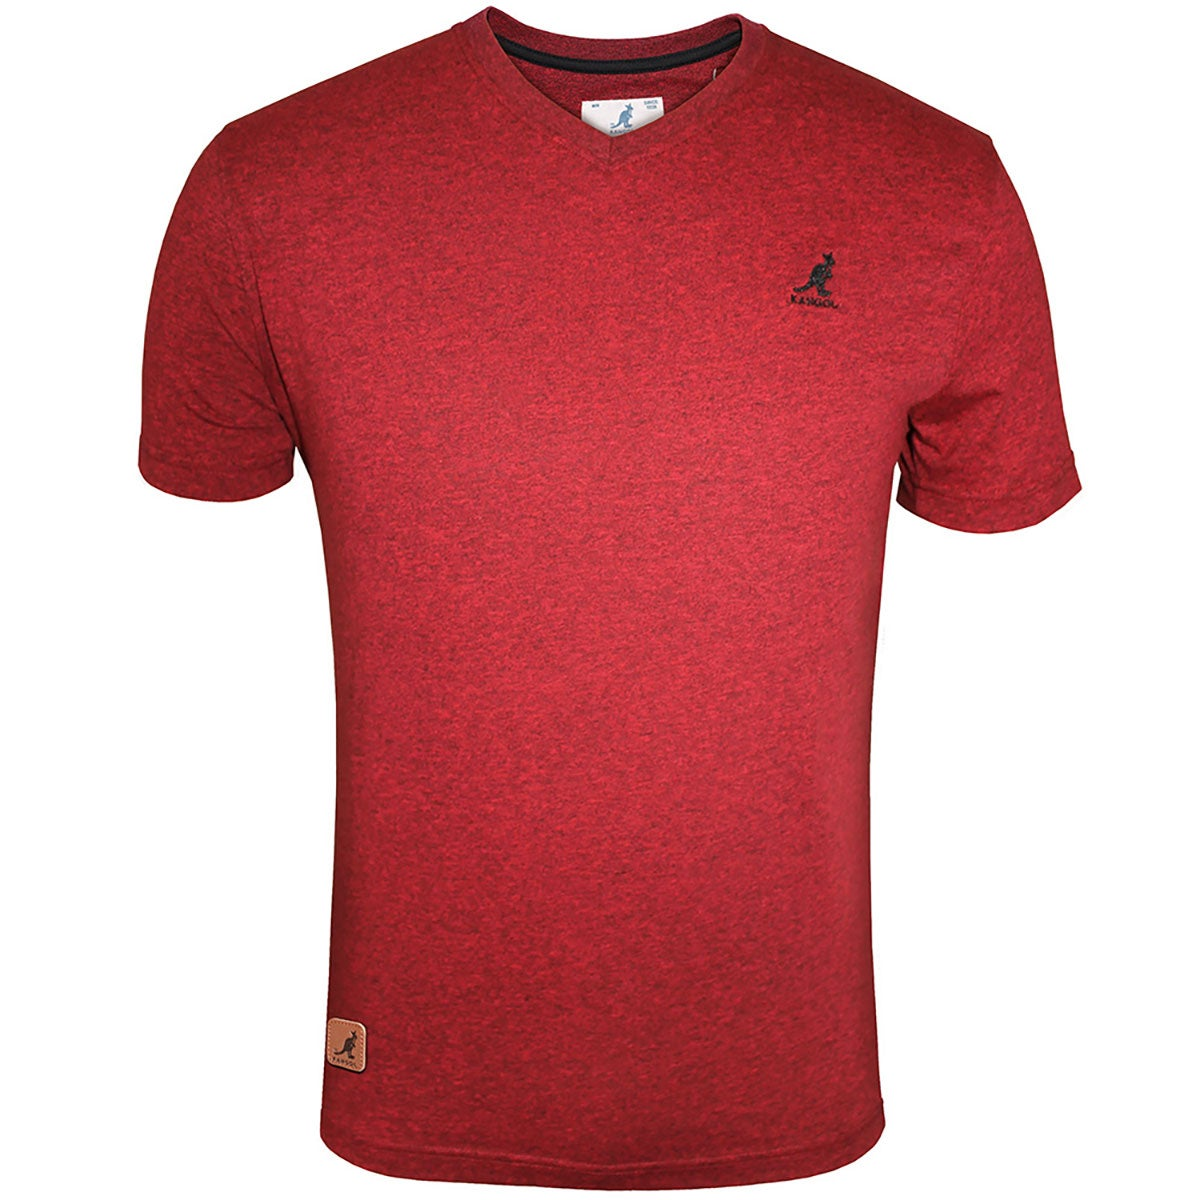 Kangol Alex Tee in Chili Red